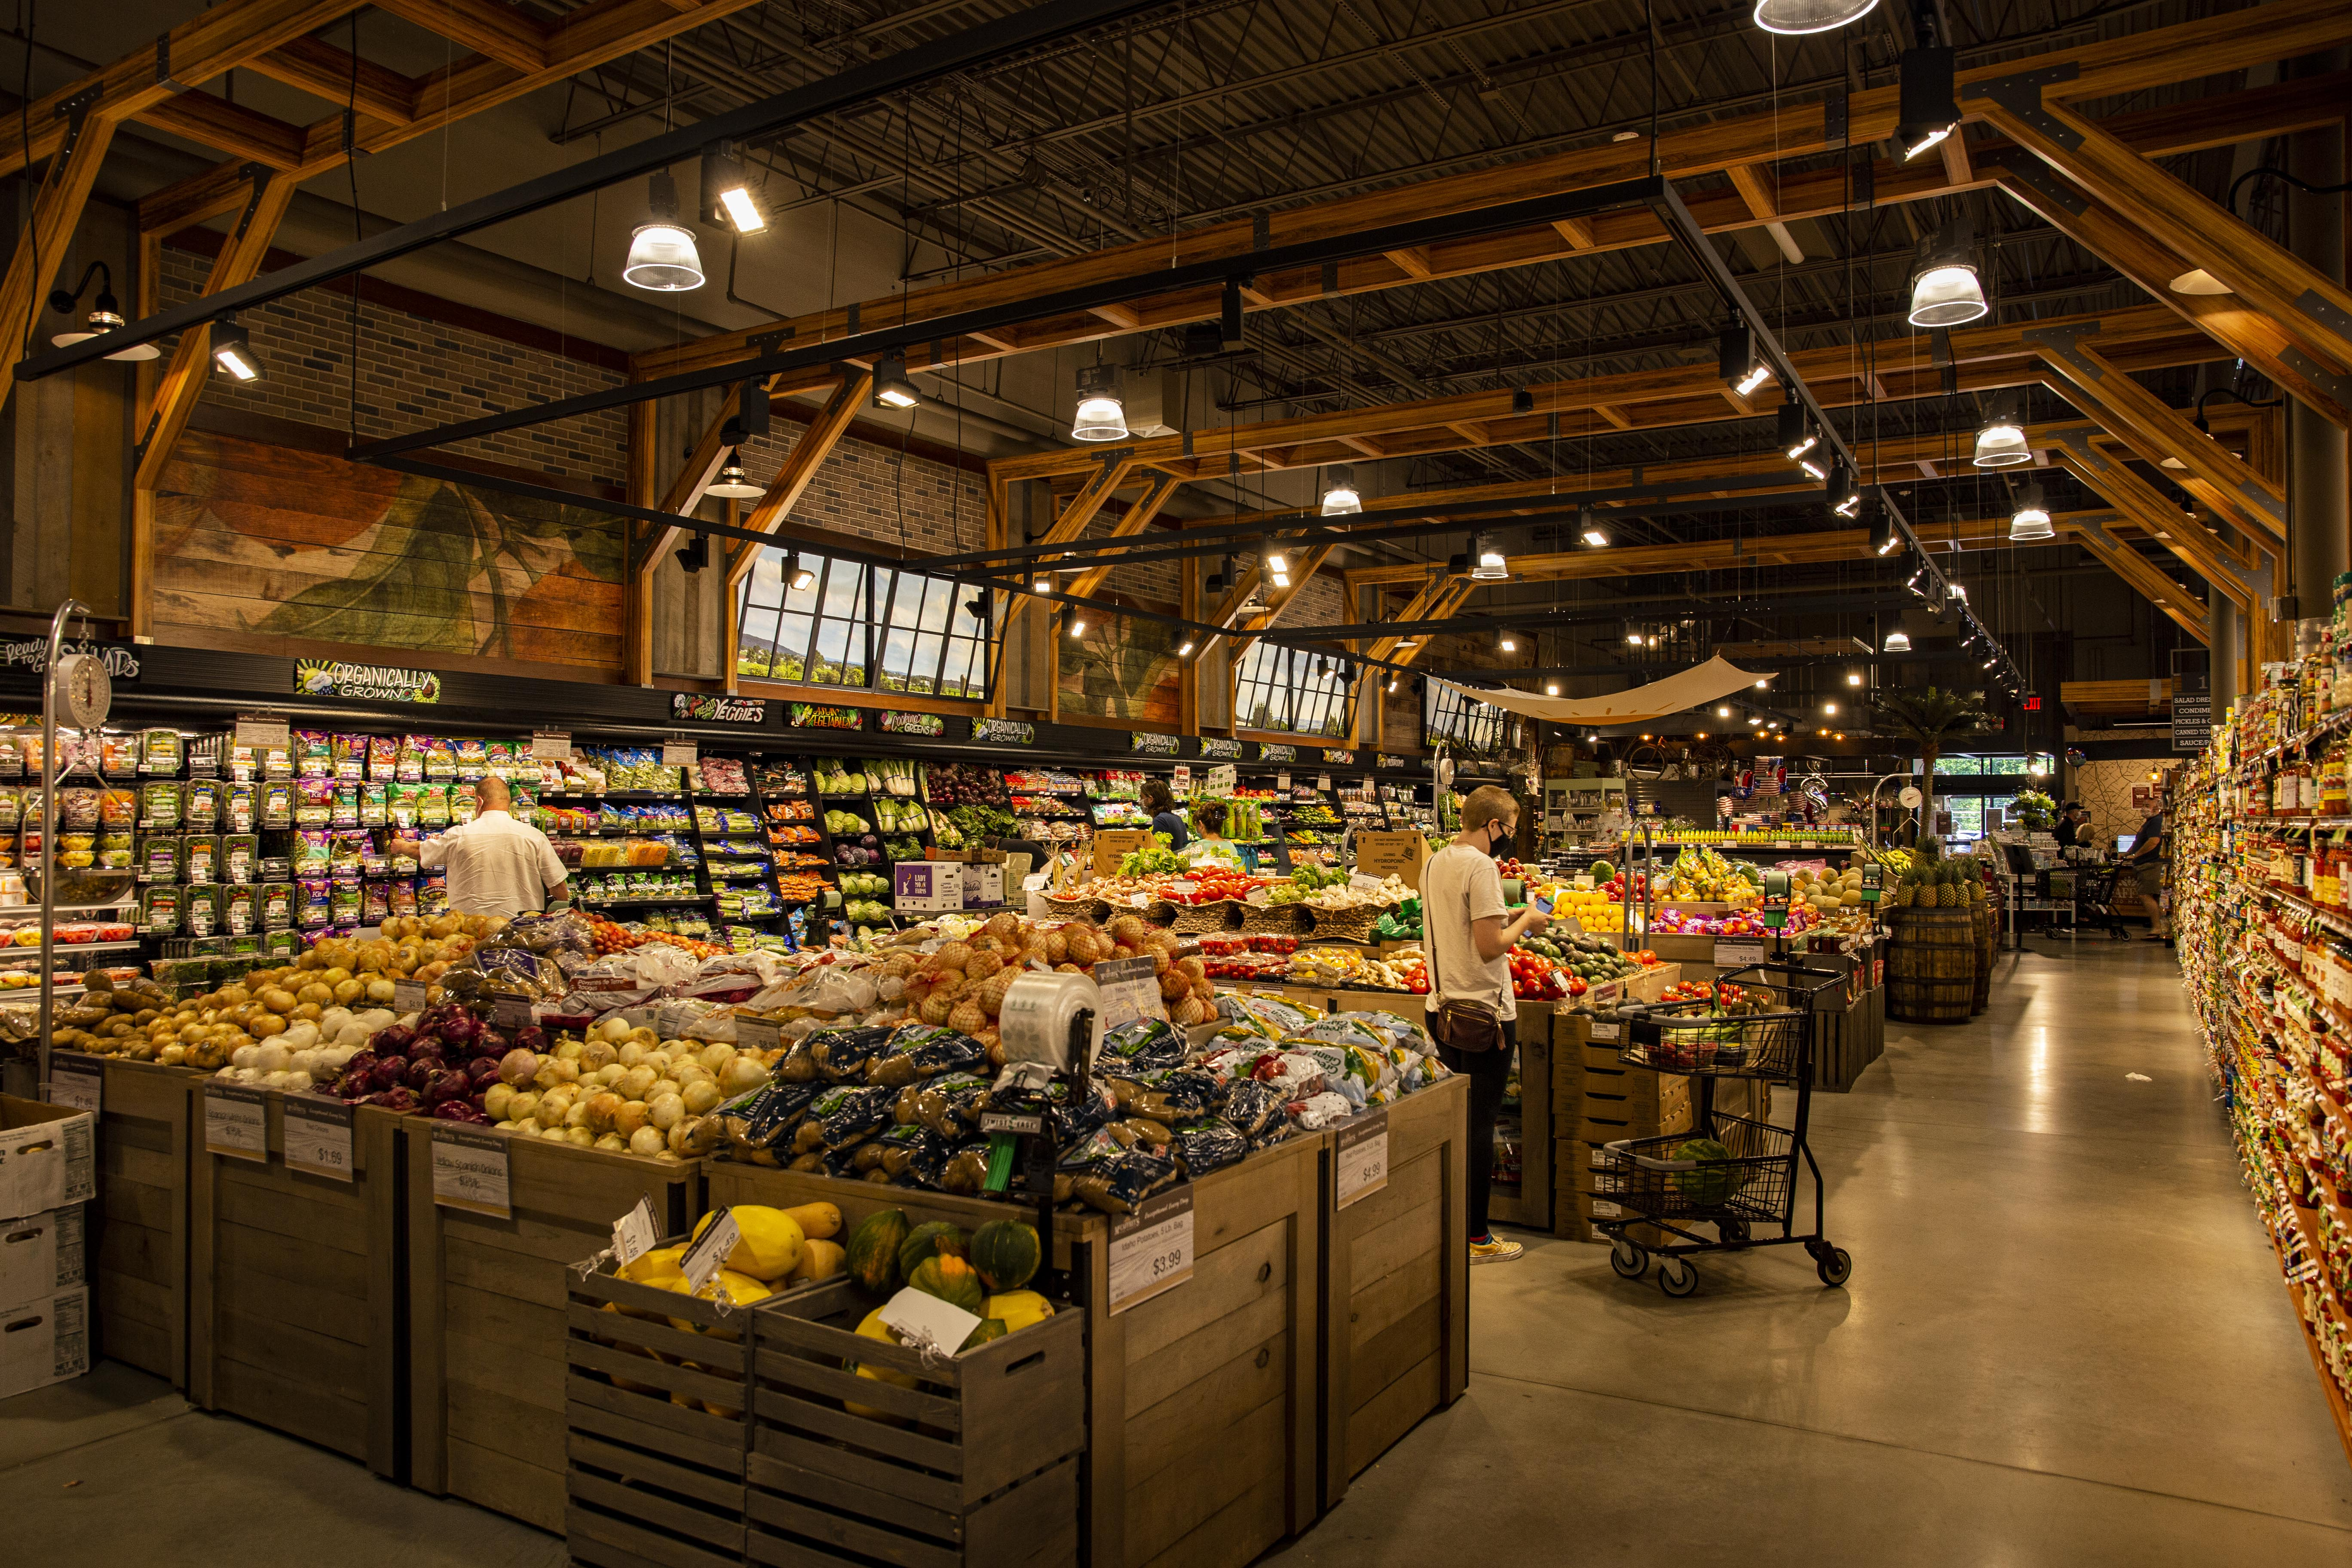 Interior of supermarket, fruits and vegetable section. Two people browsing with shopping carts.